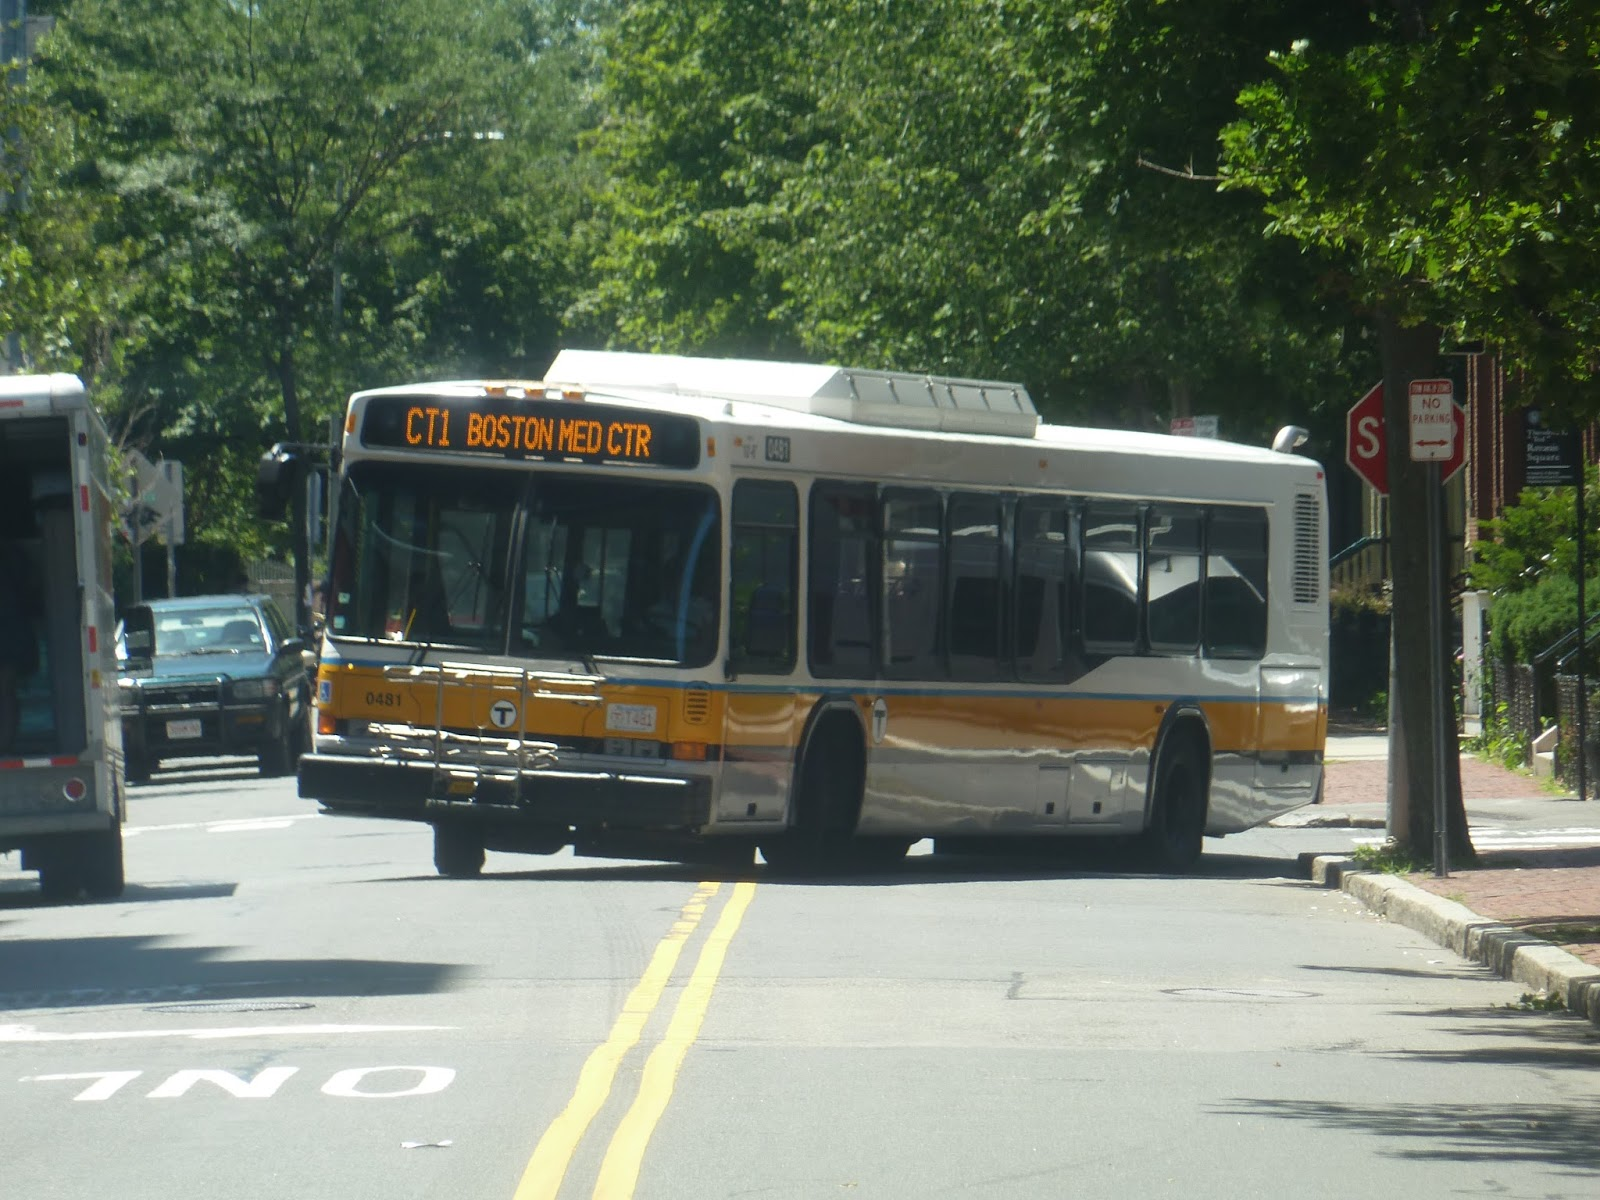 miles on the mbta: ct1 (central square, cambridge - bu medical